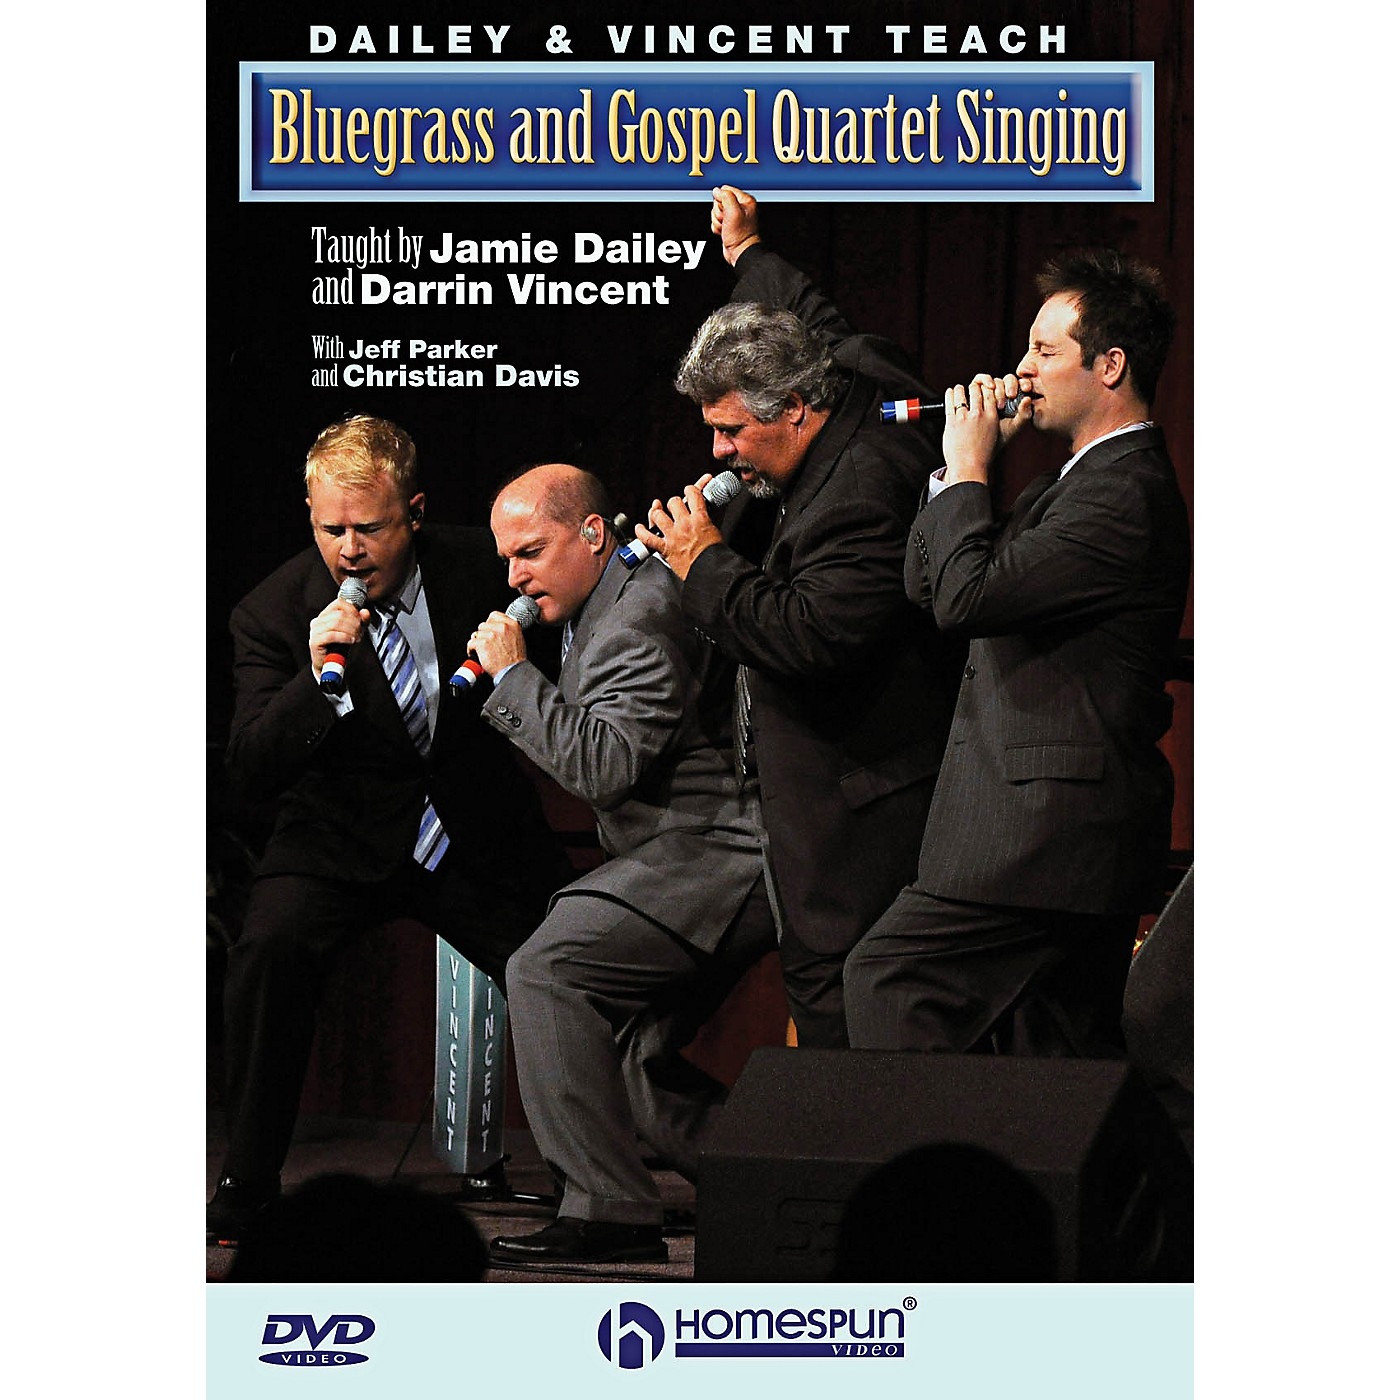 Homespun Dailey & Vincent Teach Bluegrass And Gospel Quartet Singing DVD thumbnail